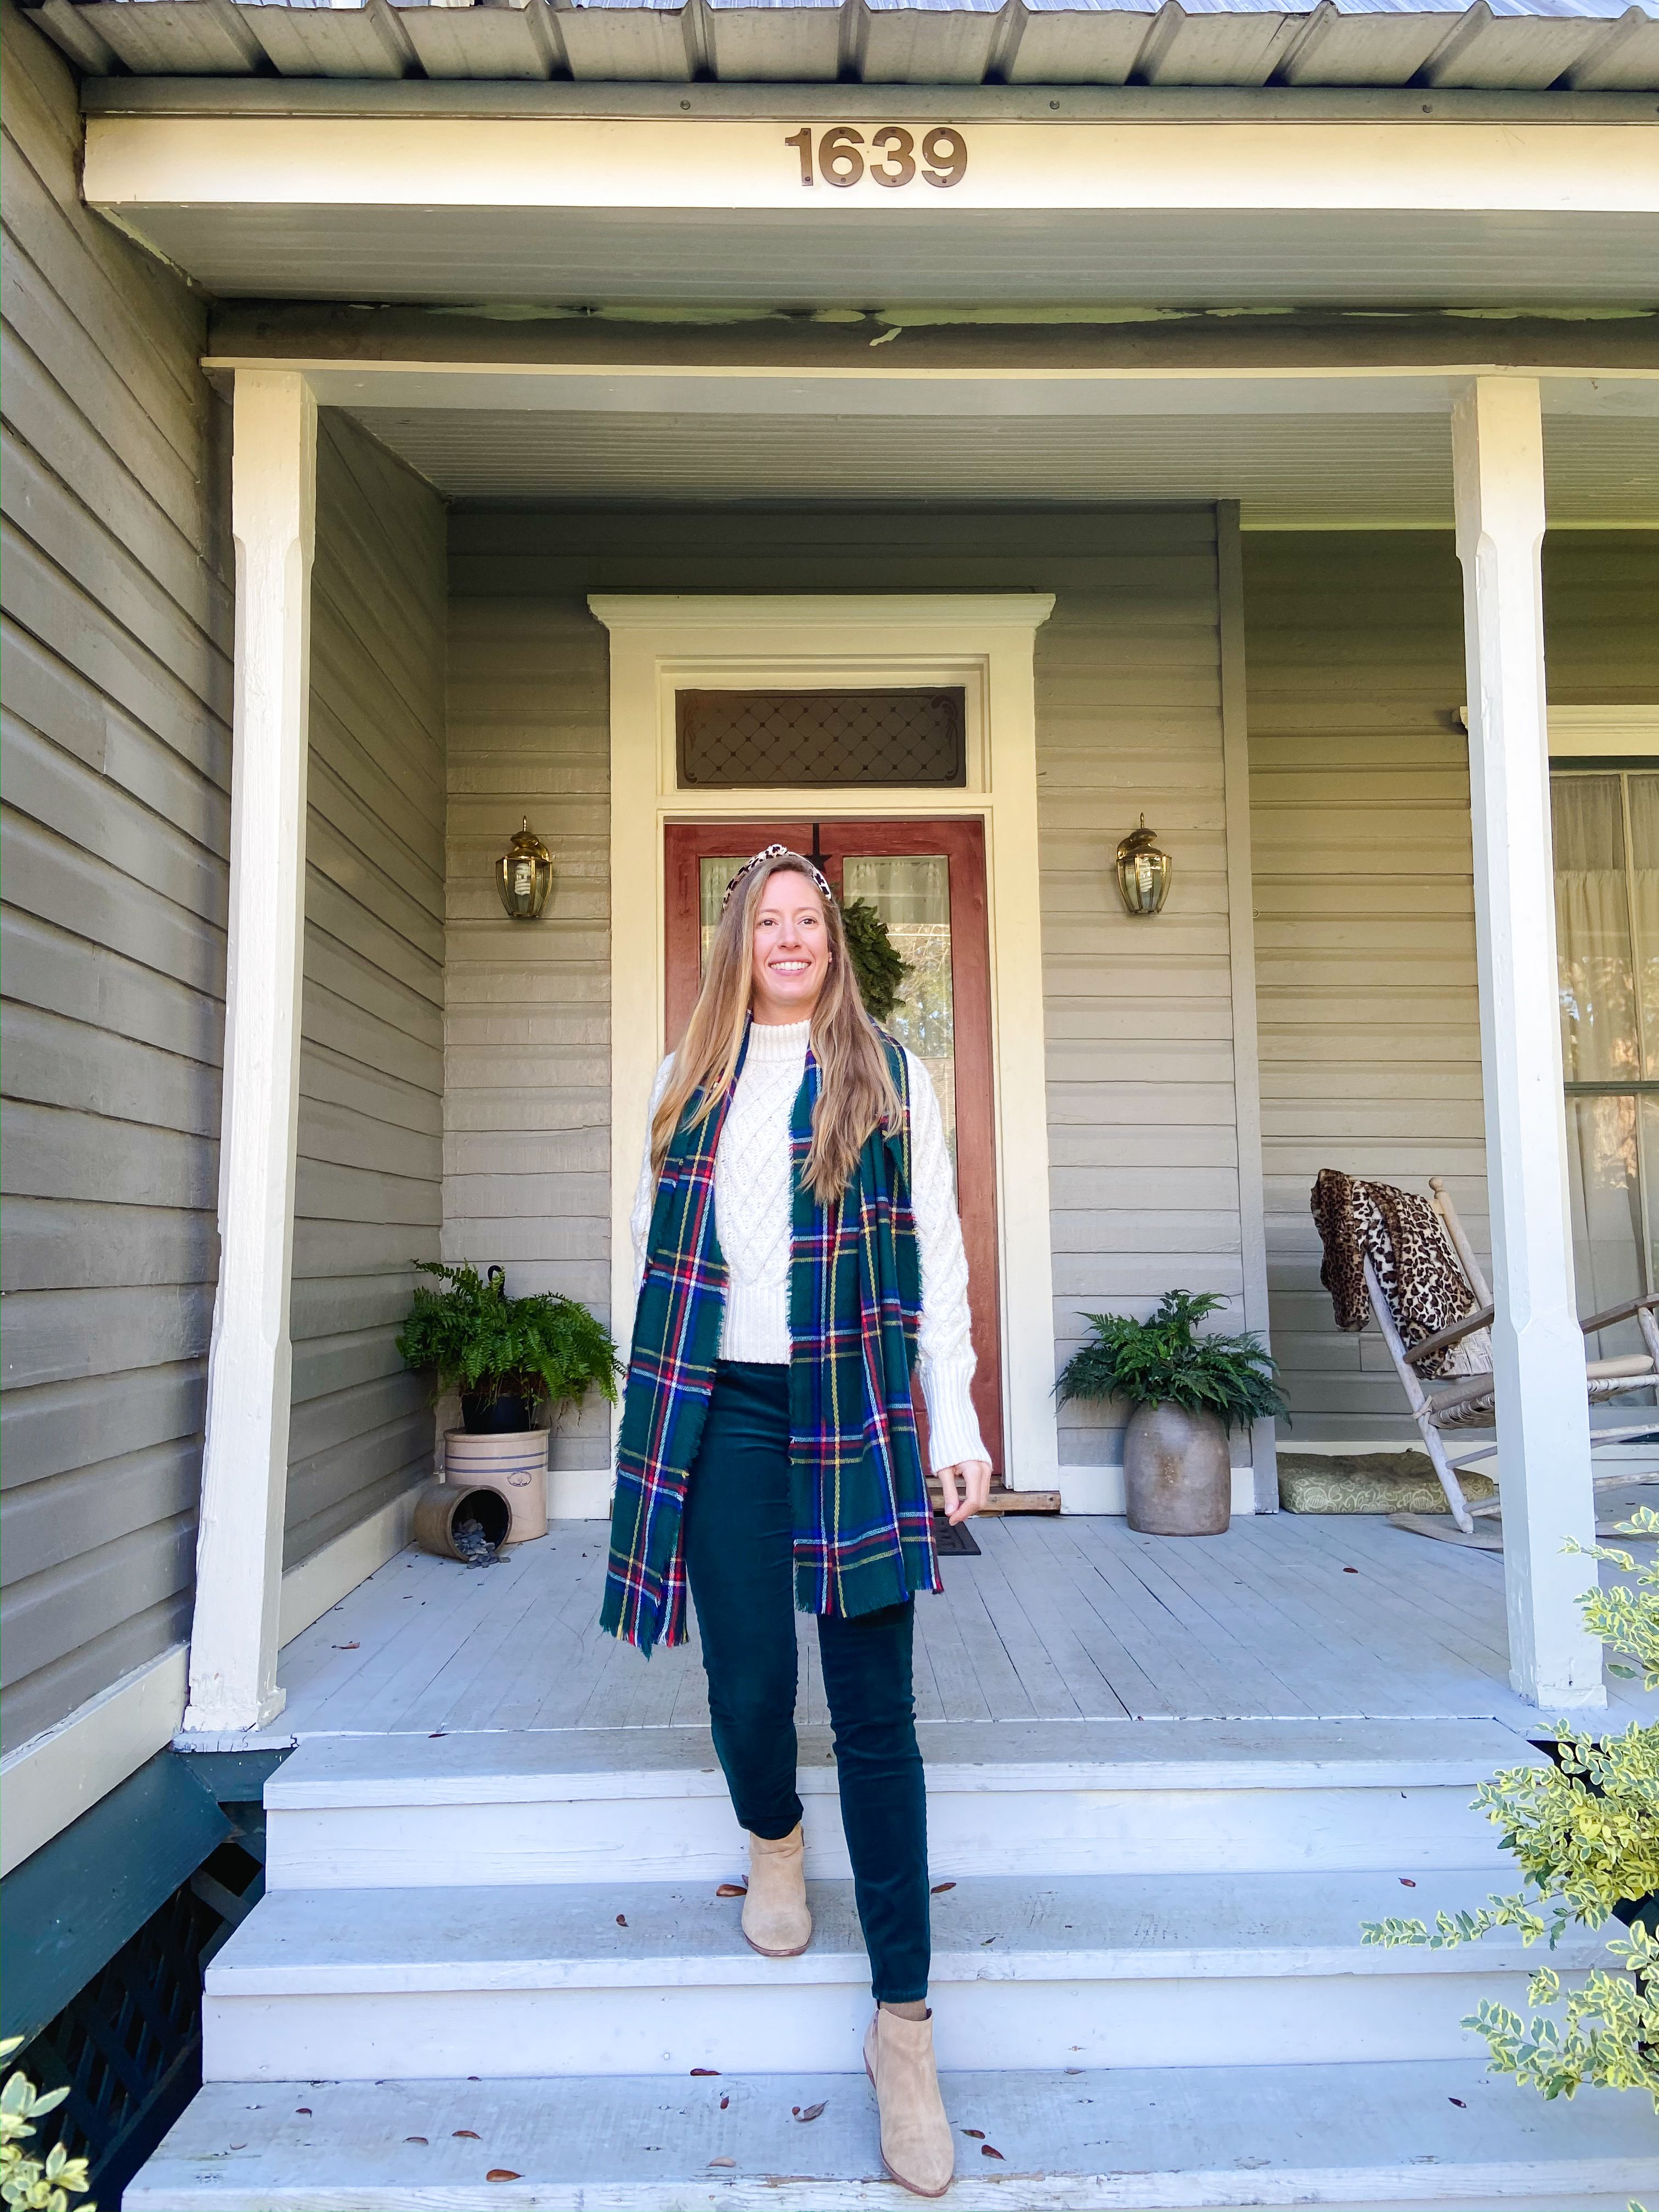 Tallahassee Travel Guide + What I Wore Florida fashion